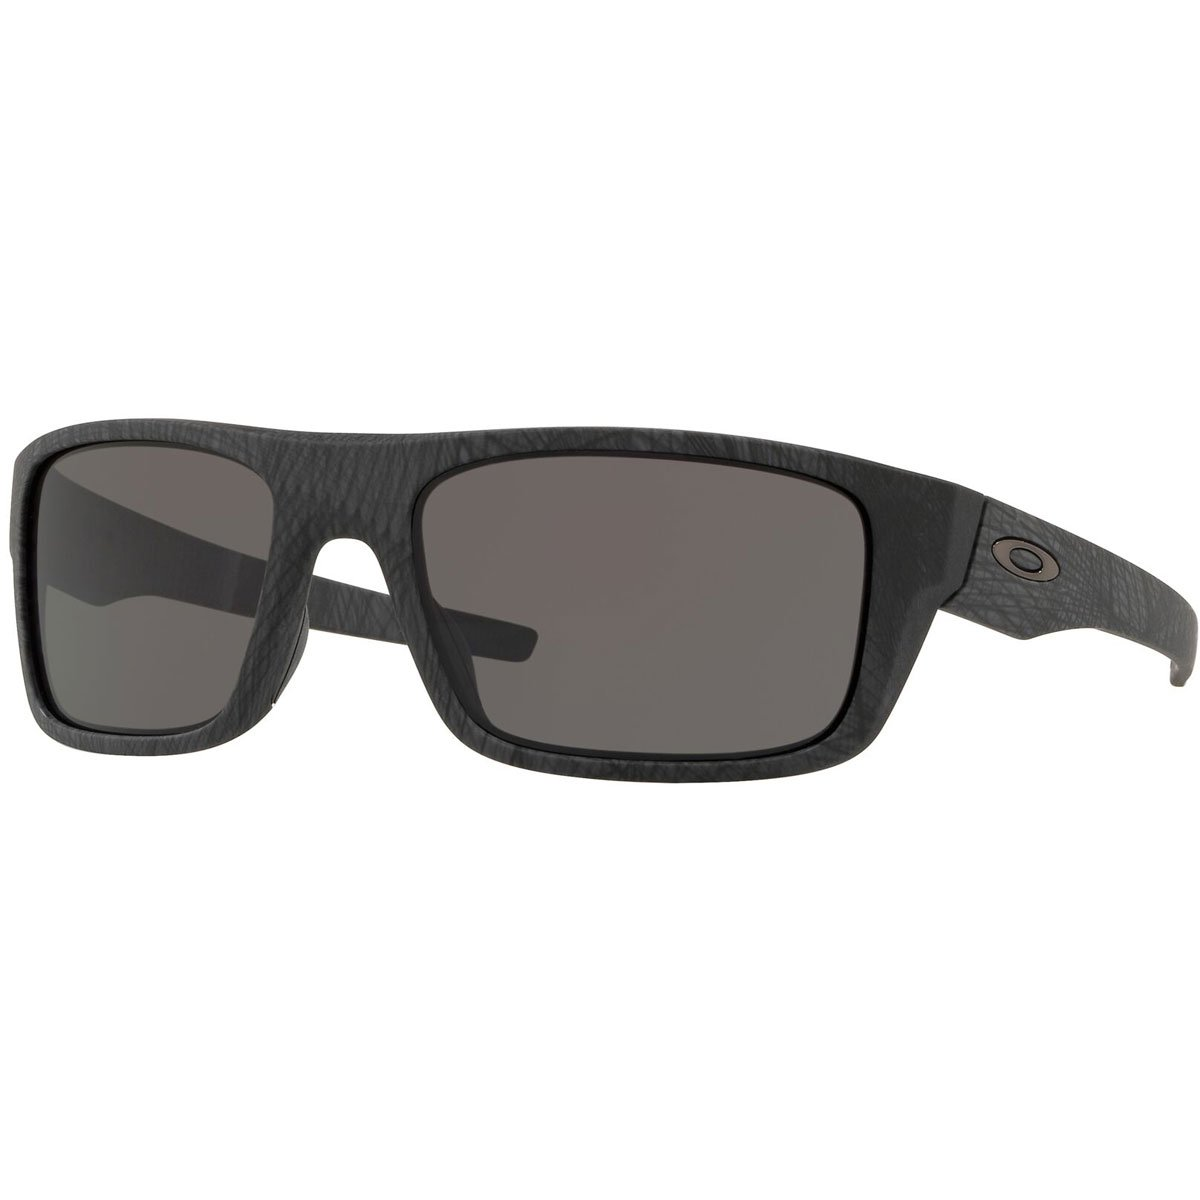 Oakley Drop Point 936720 60 Gafas de sol, Gris (Aero Grimed Warm Grey), Hombre